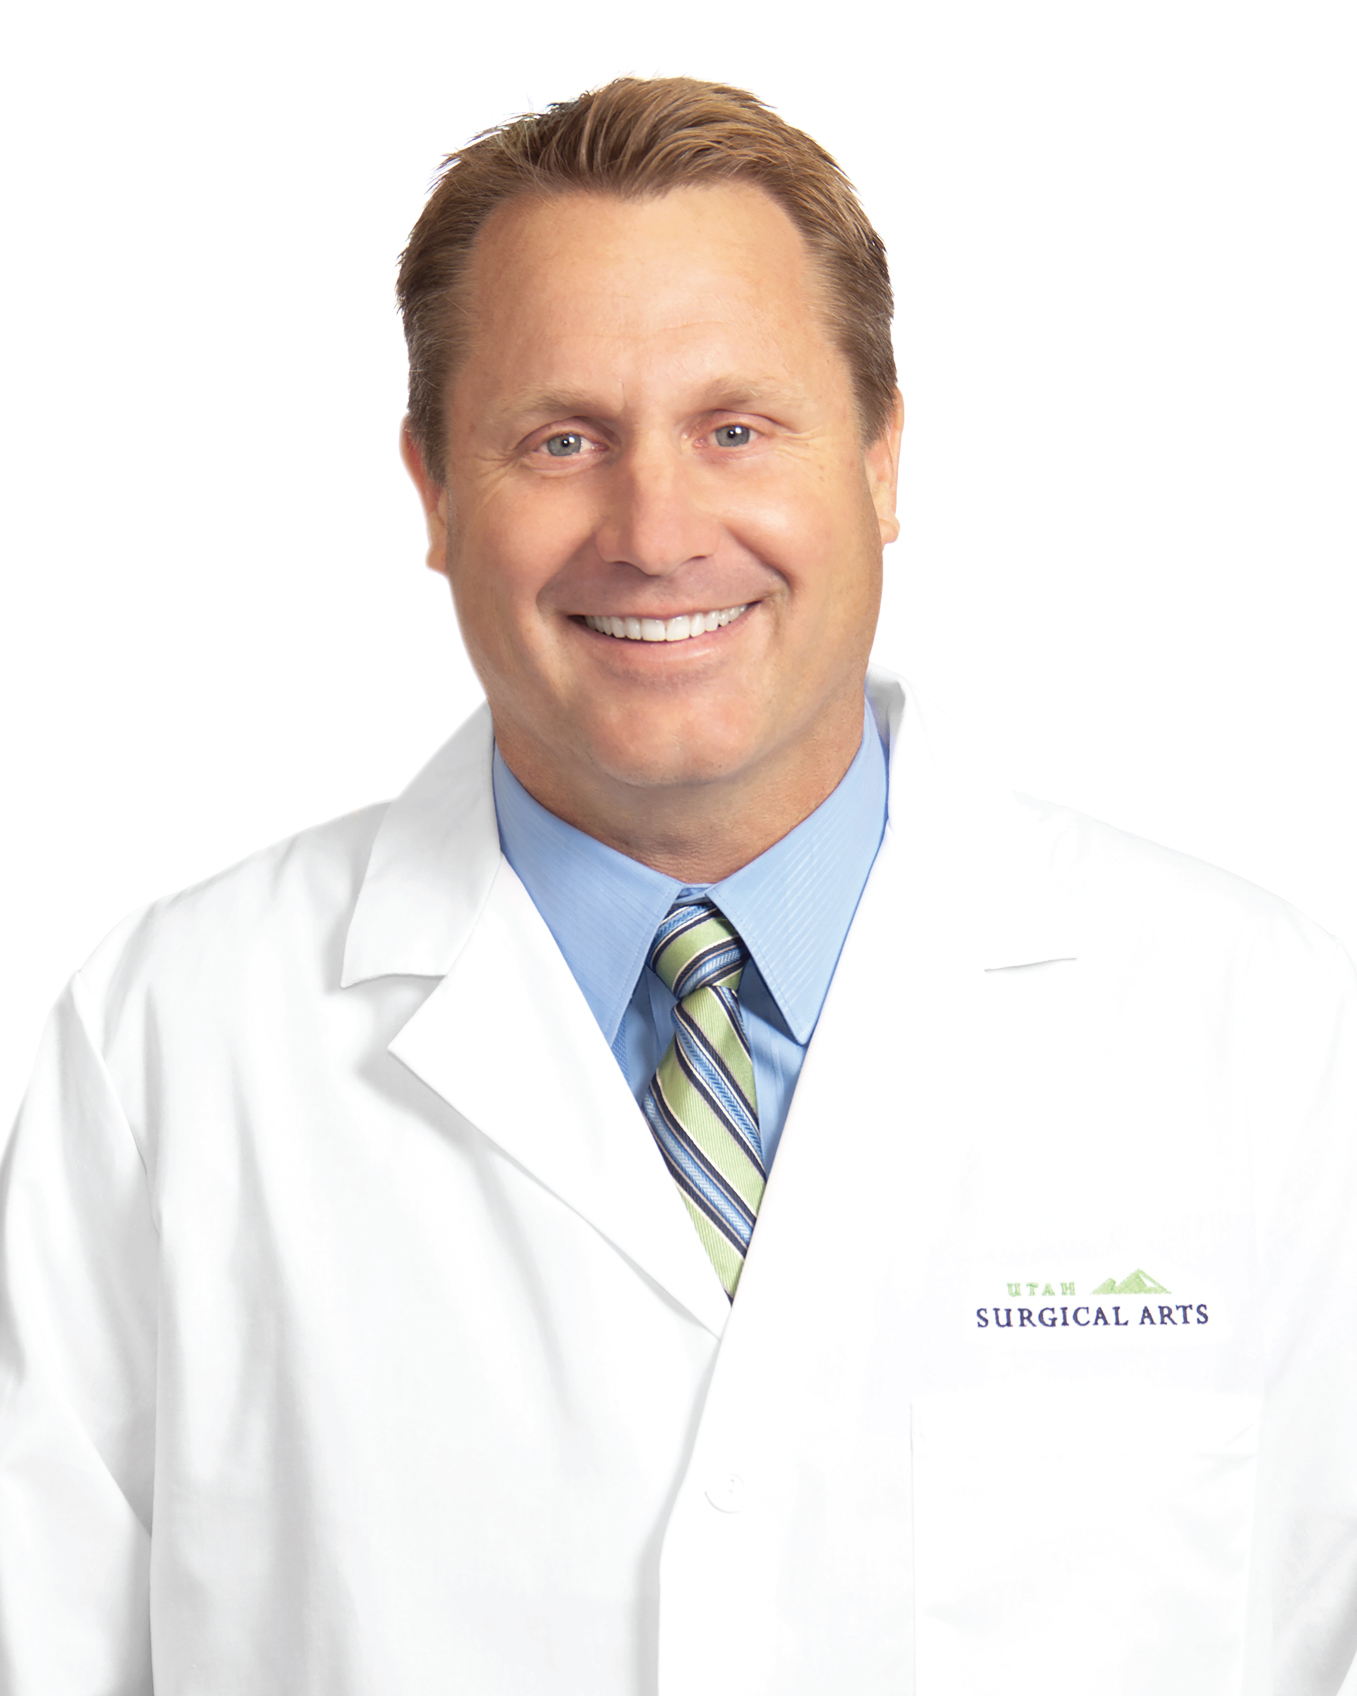 Dr. Michael Harris, DDS